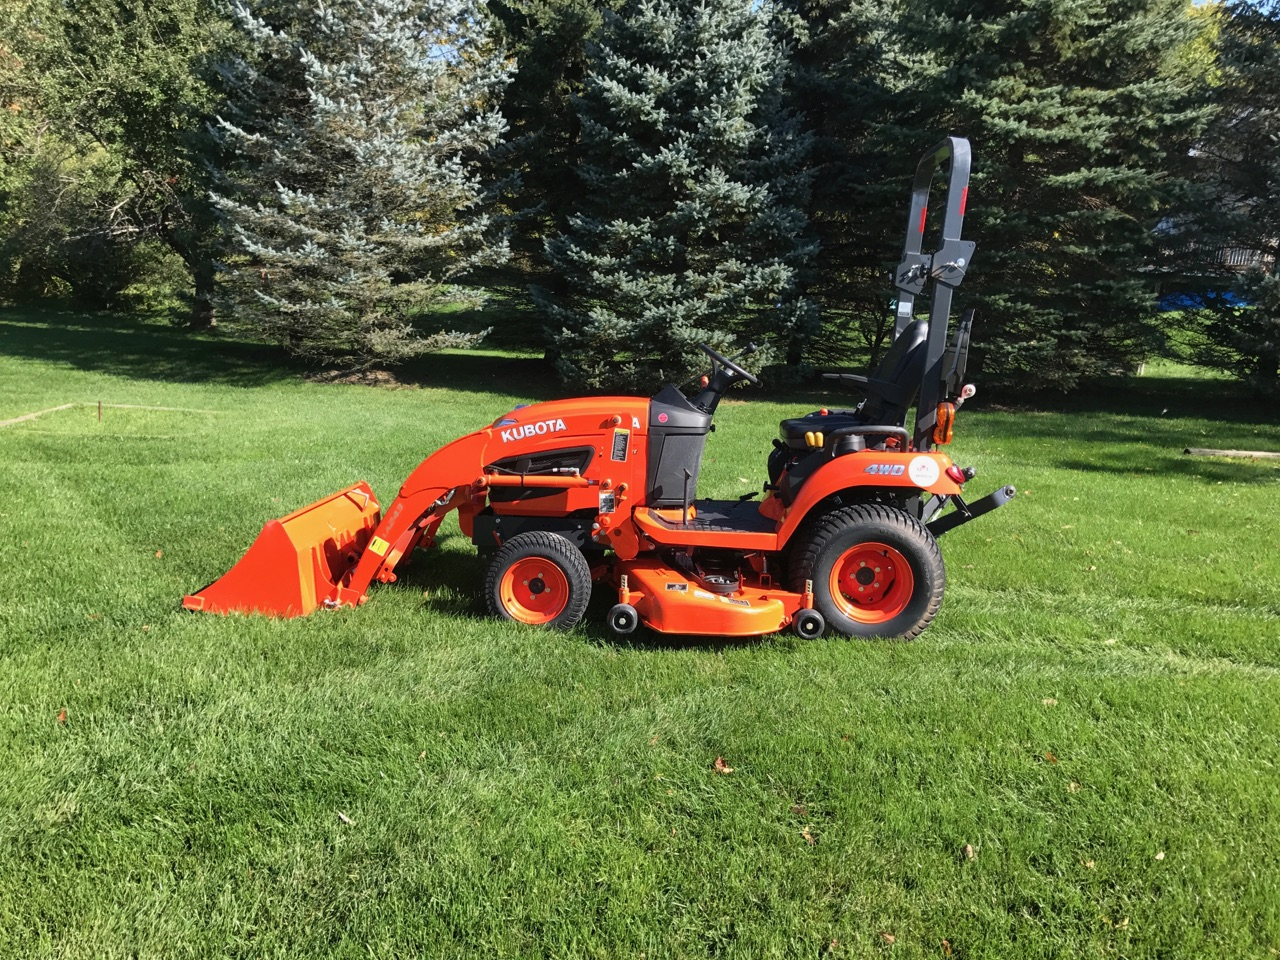 2016 Kubota BX2670 With Loader and Mower | LawnSite